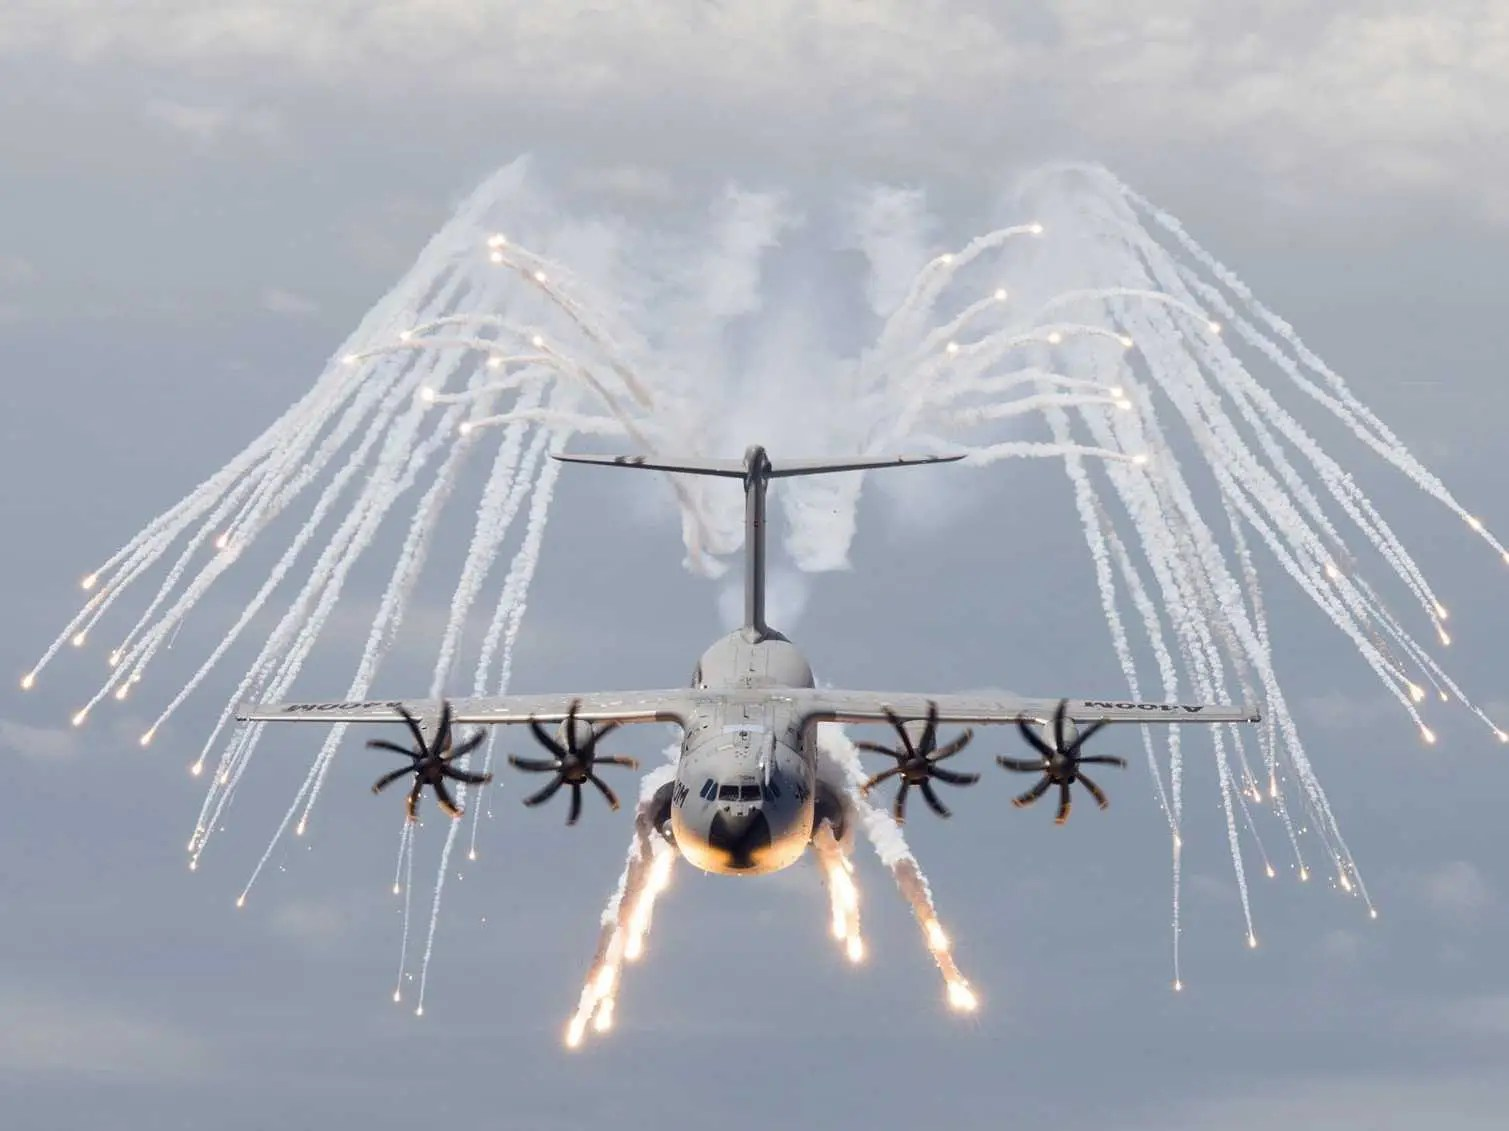 Airbus A400M military transport cargo plane flares